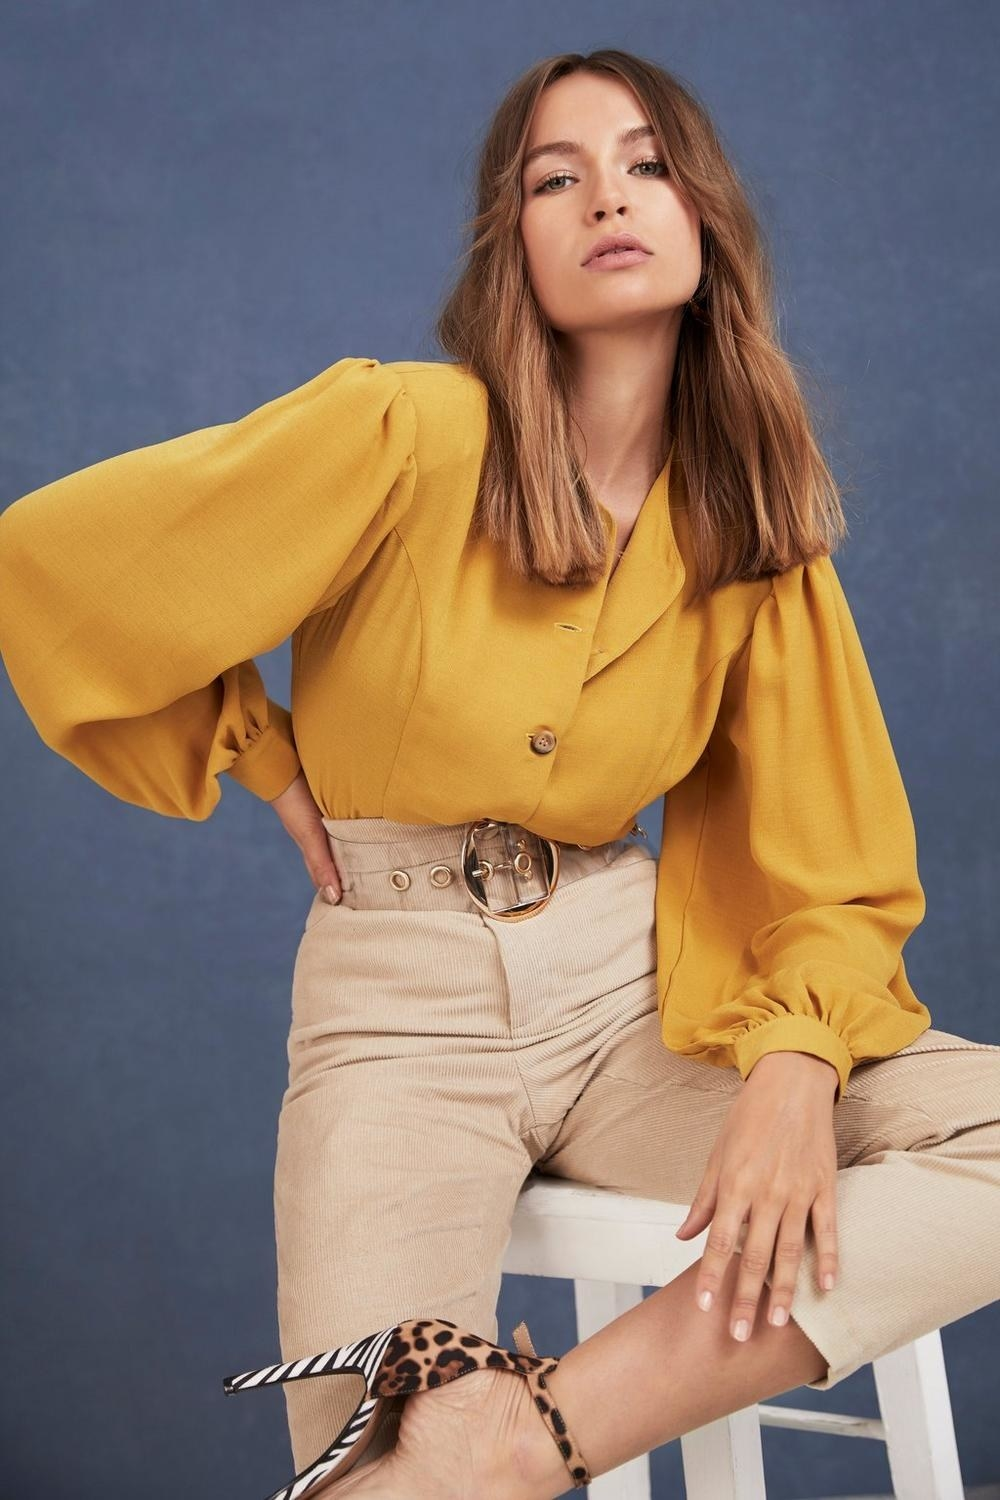 Model wearing the mustard yellow blouse tucked into high-waisted pants